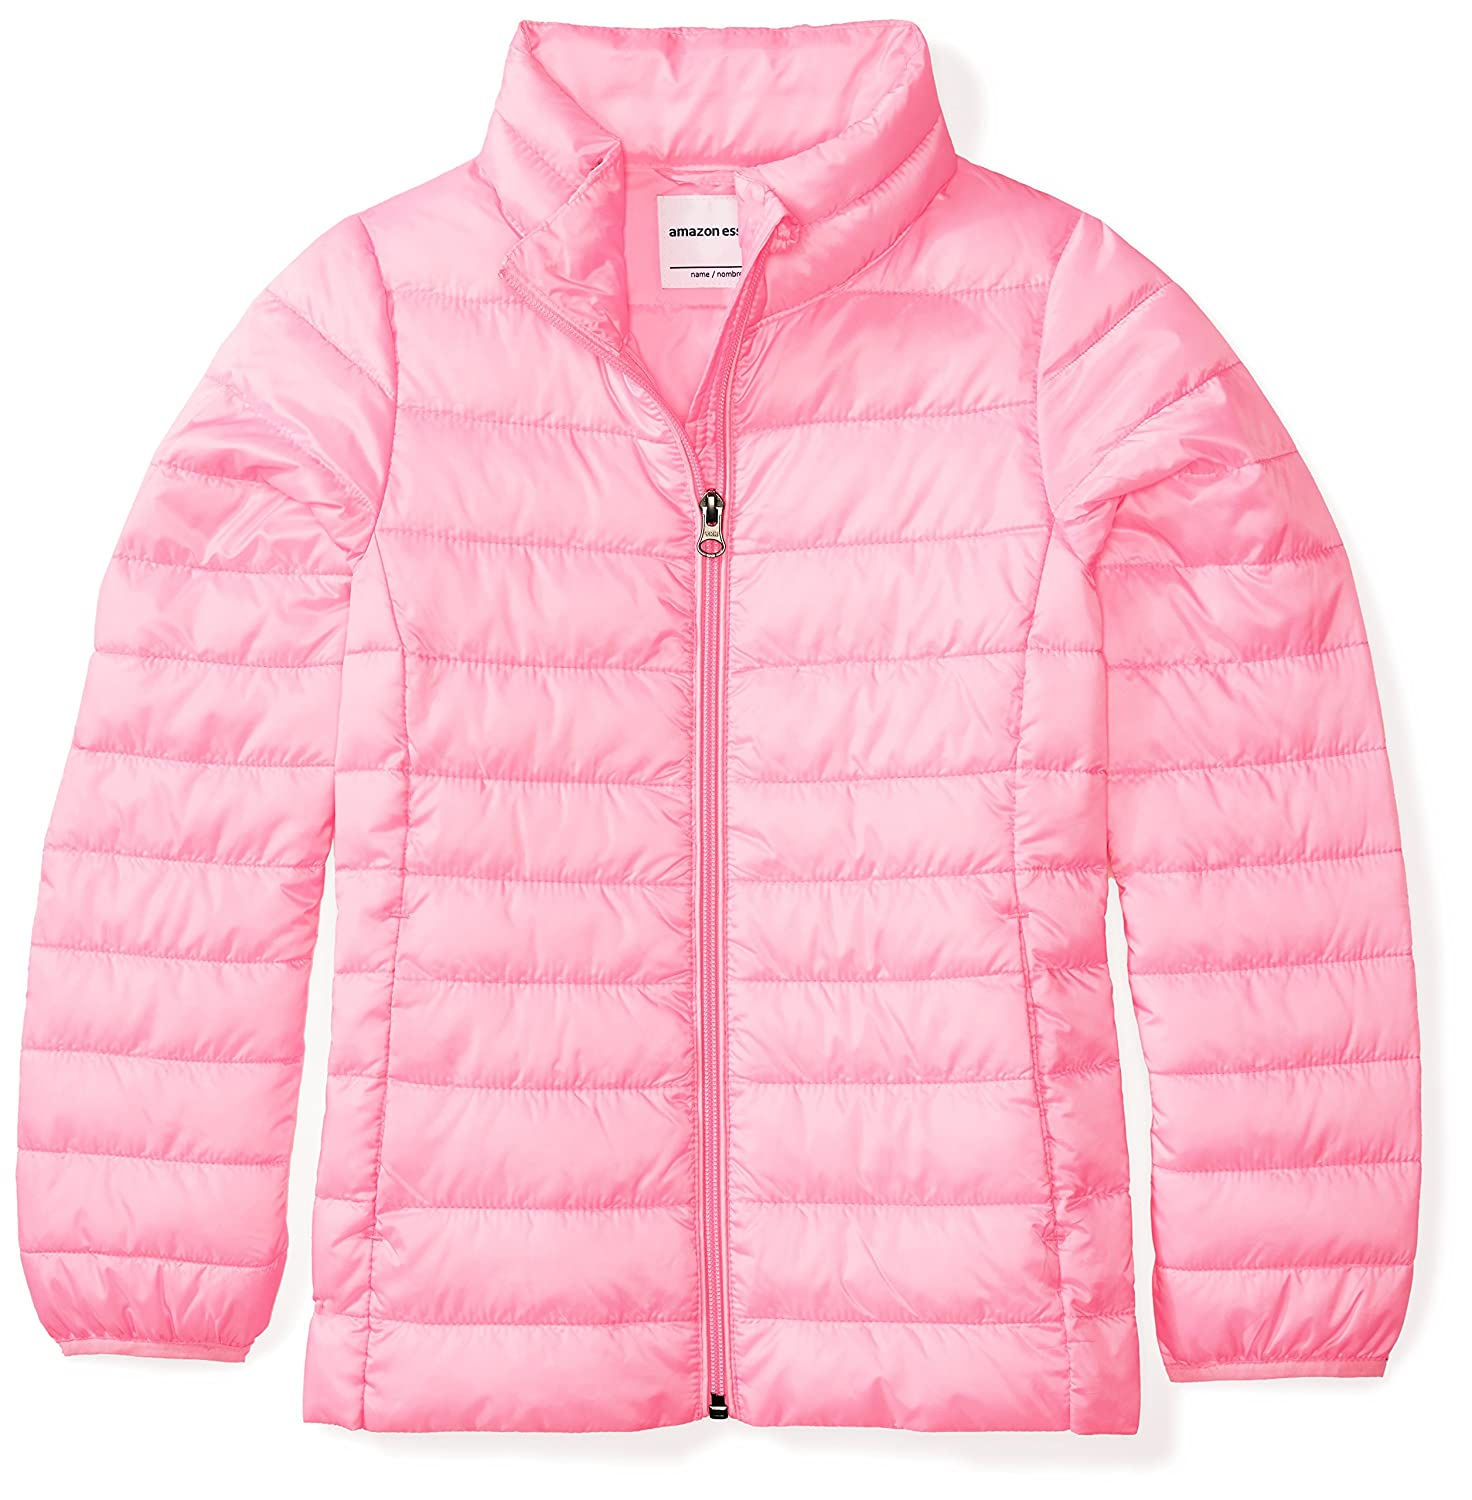 Amazon Essentials Girls Water-Resistant Packable Puffer Jacket G-S17AE10004